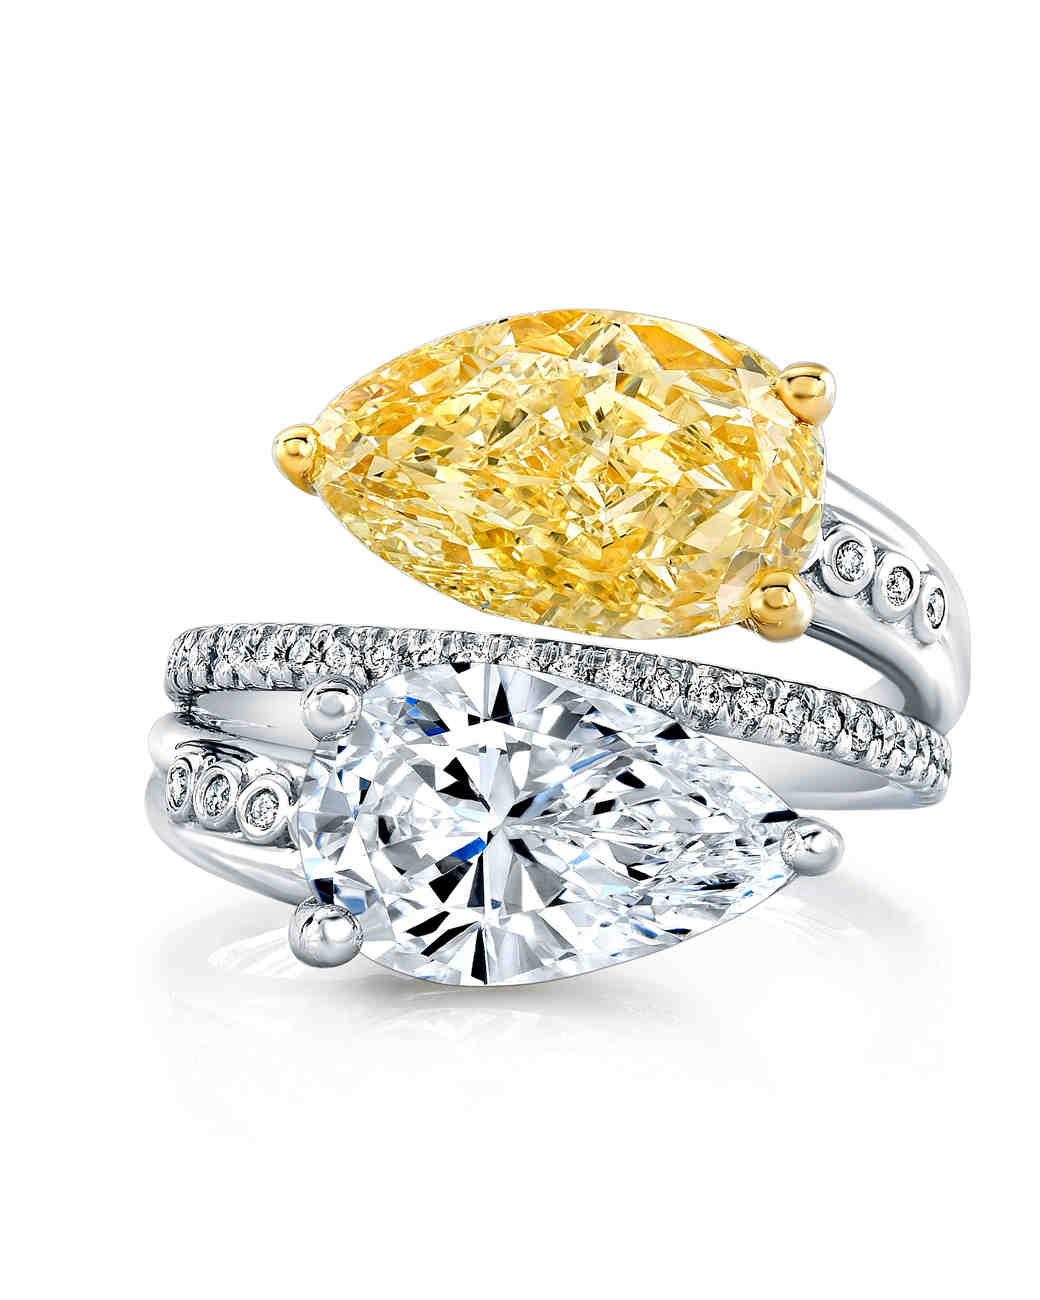 engagement-ring-trends-norman-silverman-1215.jpg